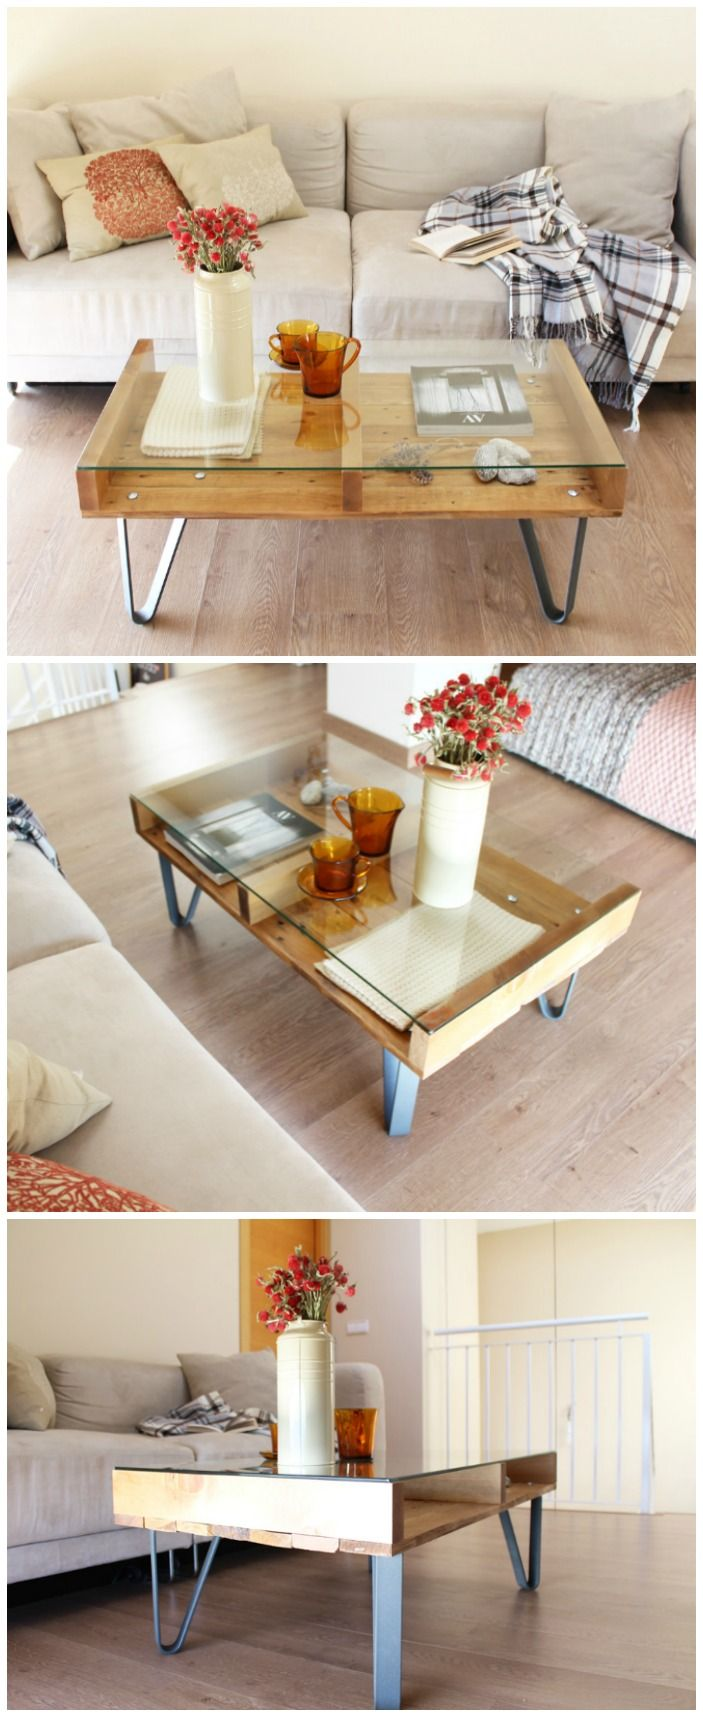 mesa industrial, mesa de madera reciclada, mesa de centro, mesa de madera con patas de metal. Industrial coffee table, upcycled wood table